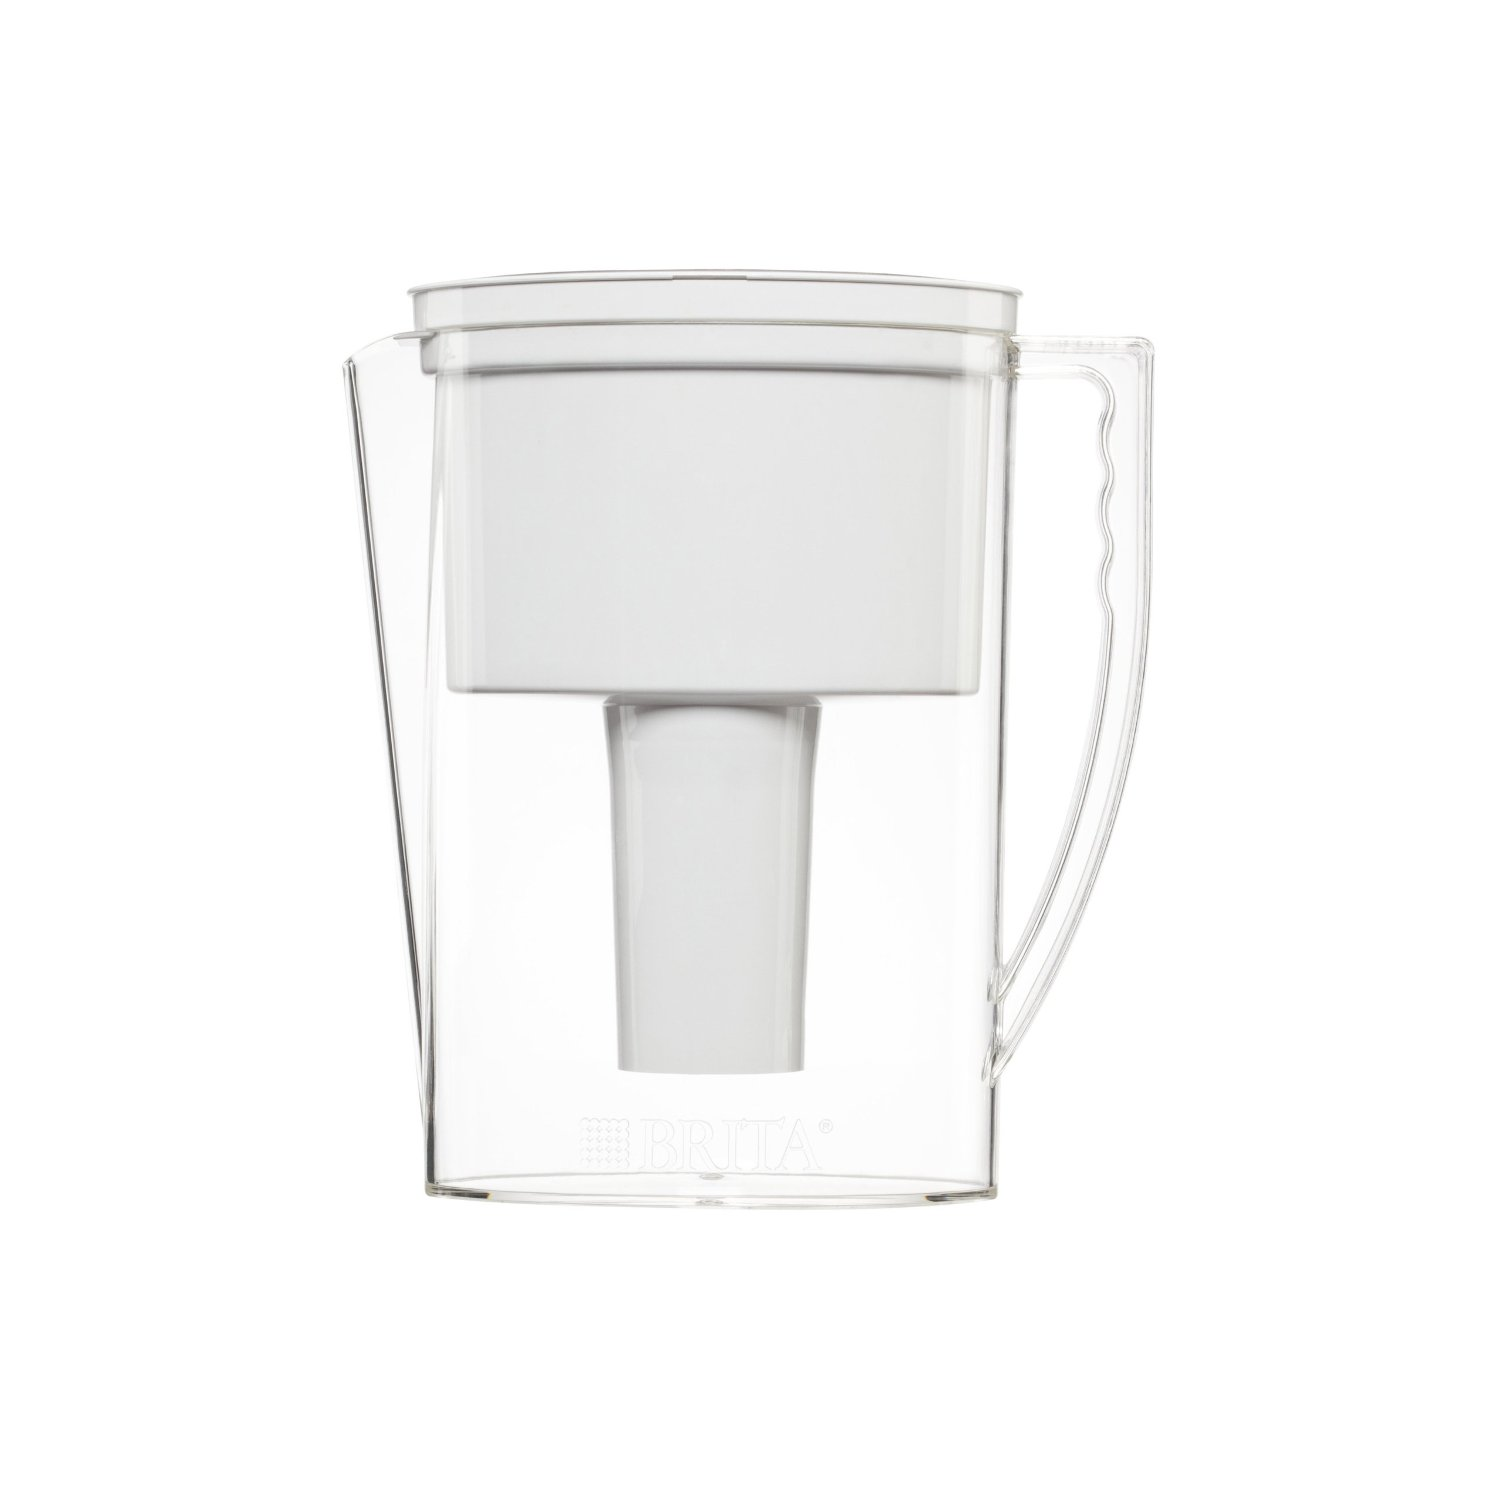 how to change a brita water pitcher filter